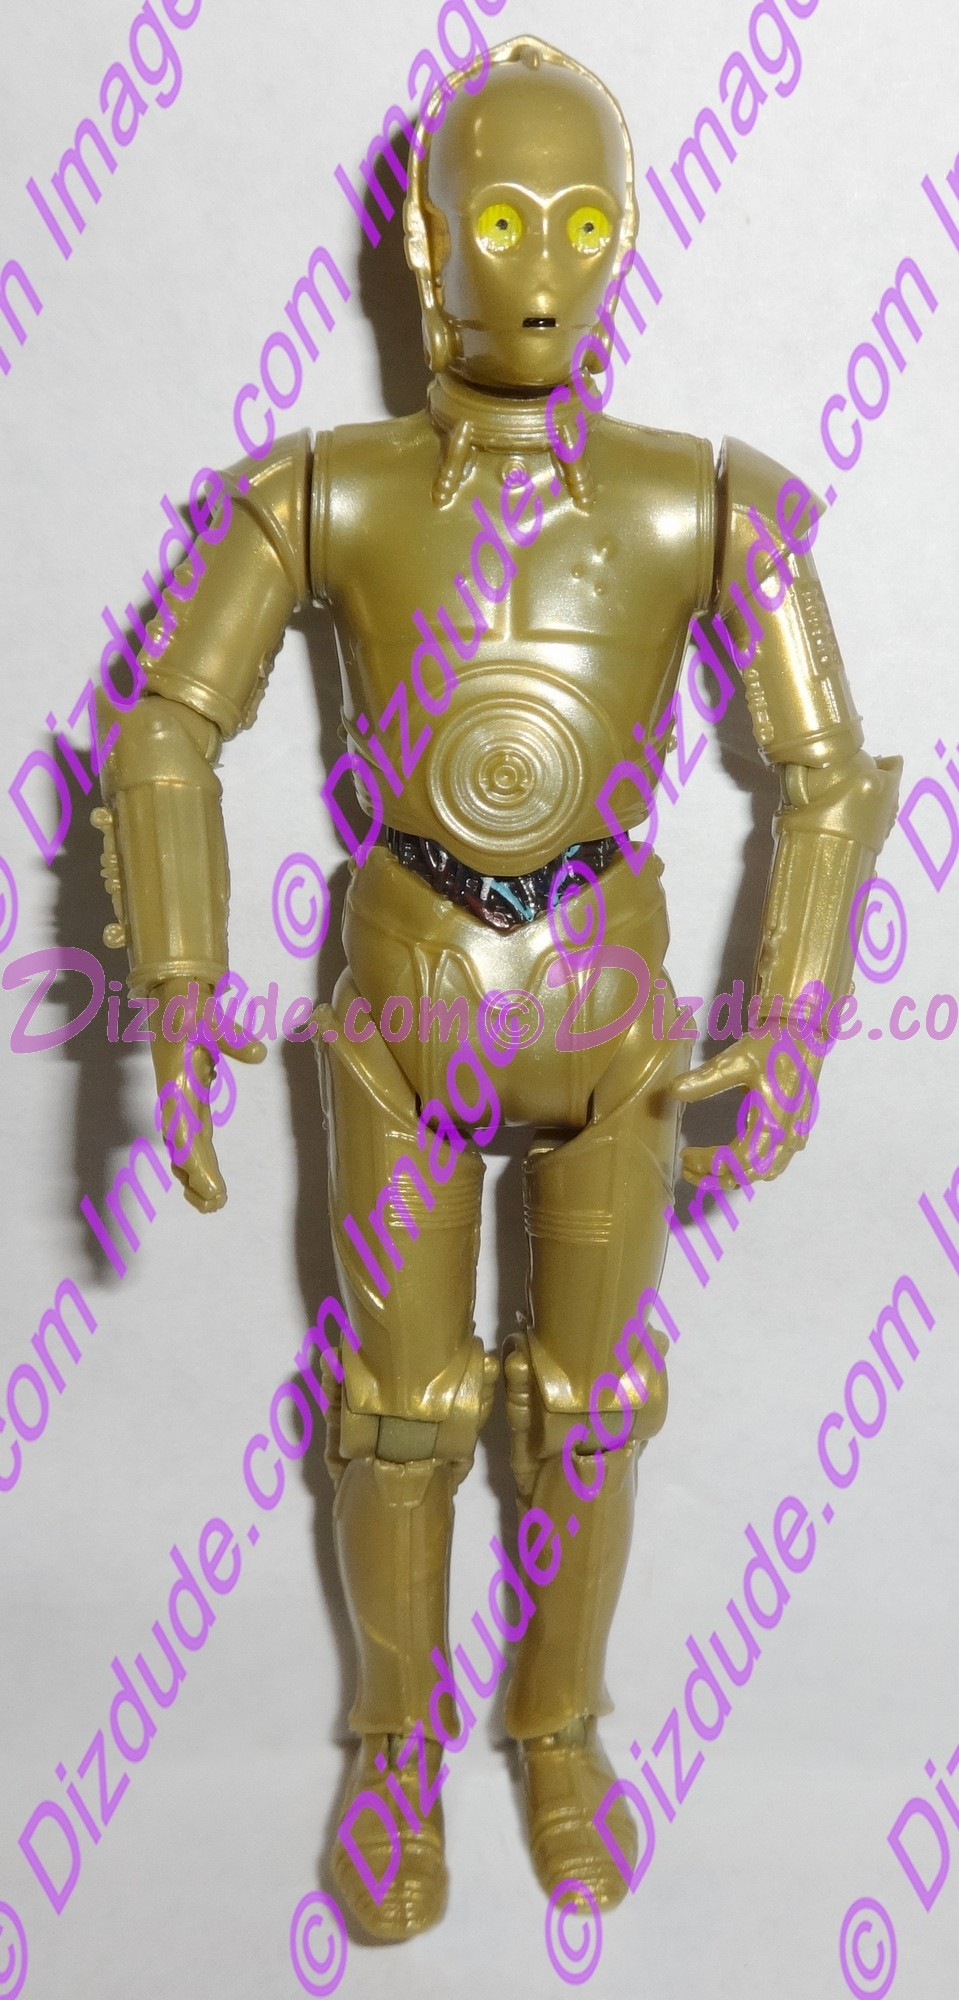 Gold C-3PO Protocol Droid from Disney Star Wars Build-A-Droid Factory © Dizdude.com